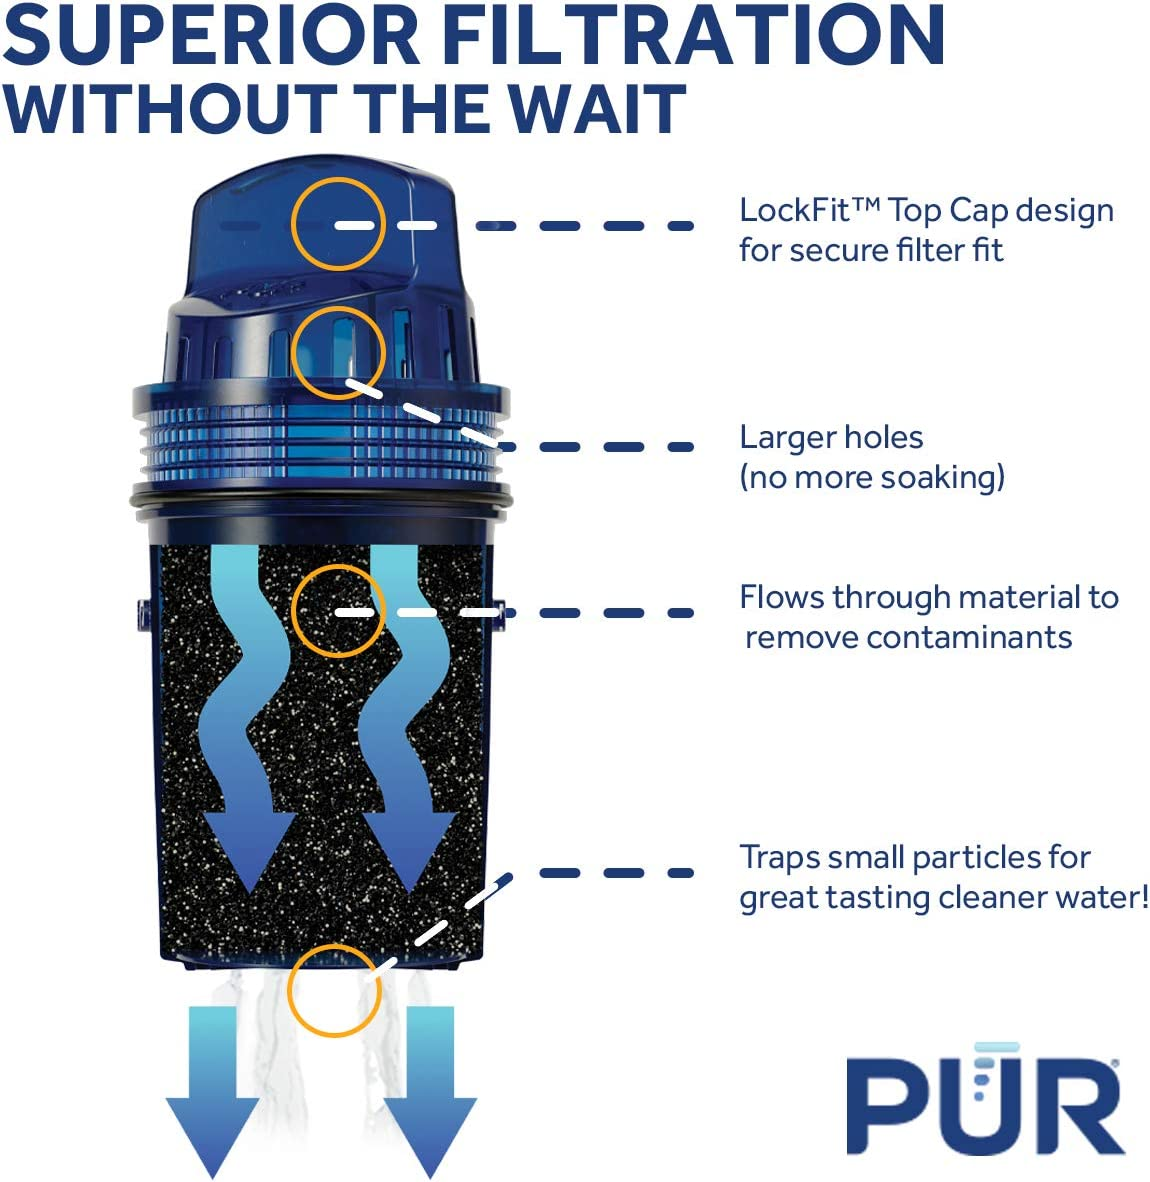 Superior Filtration without the wait